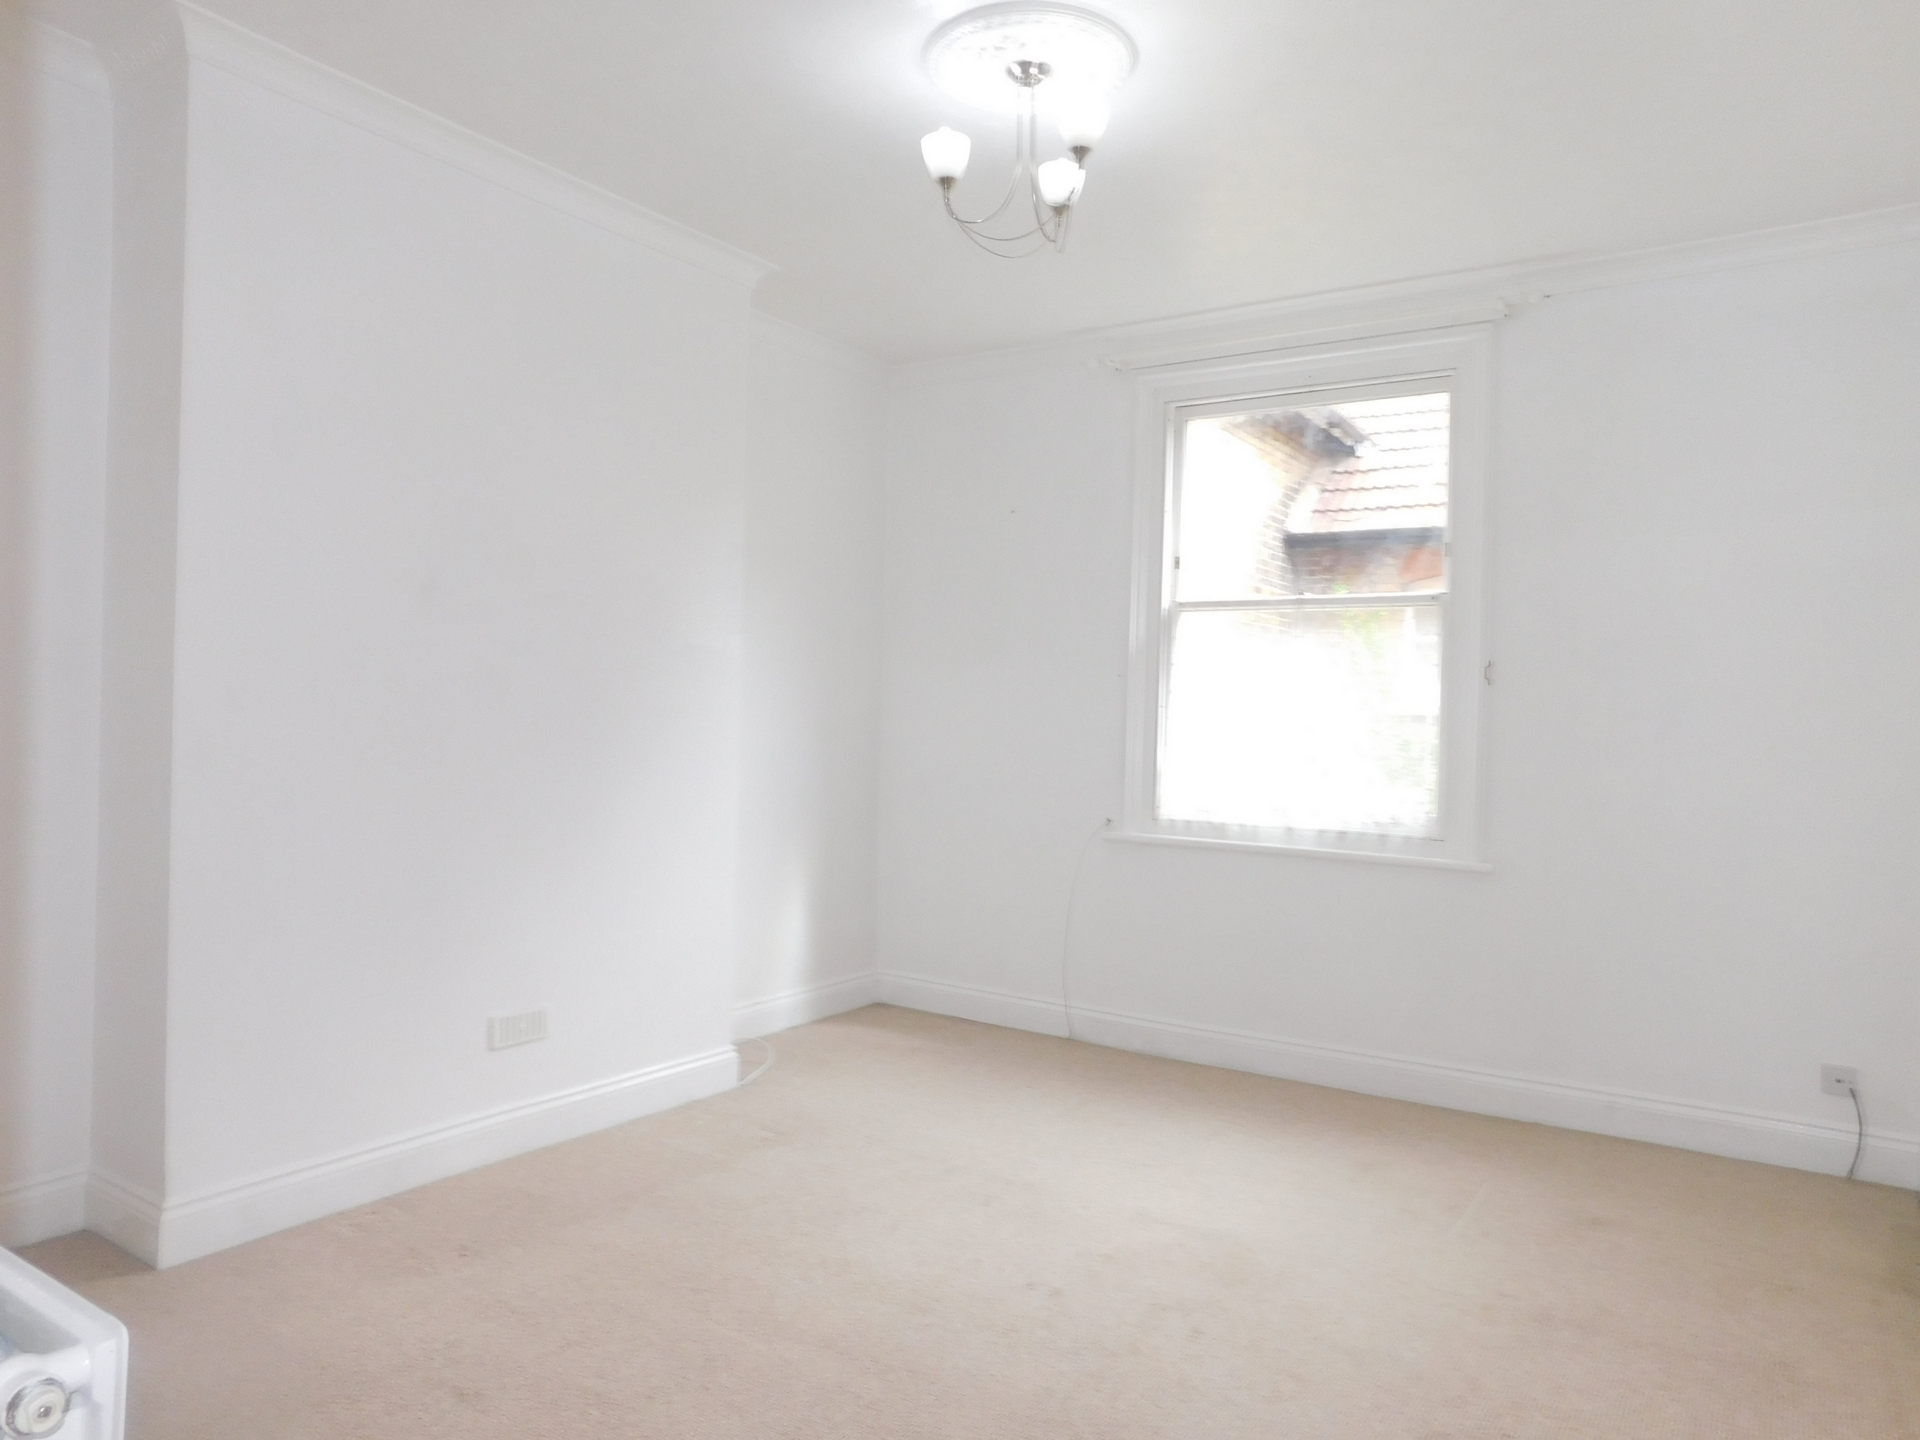 2 bed flat to rent in Westgate Bay Avenue, Westgate, CT8  - Property Image 1